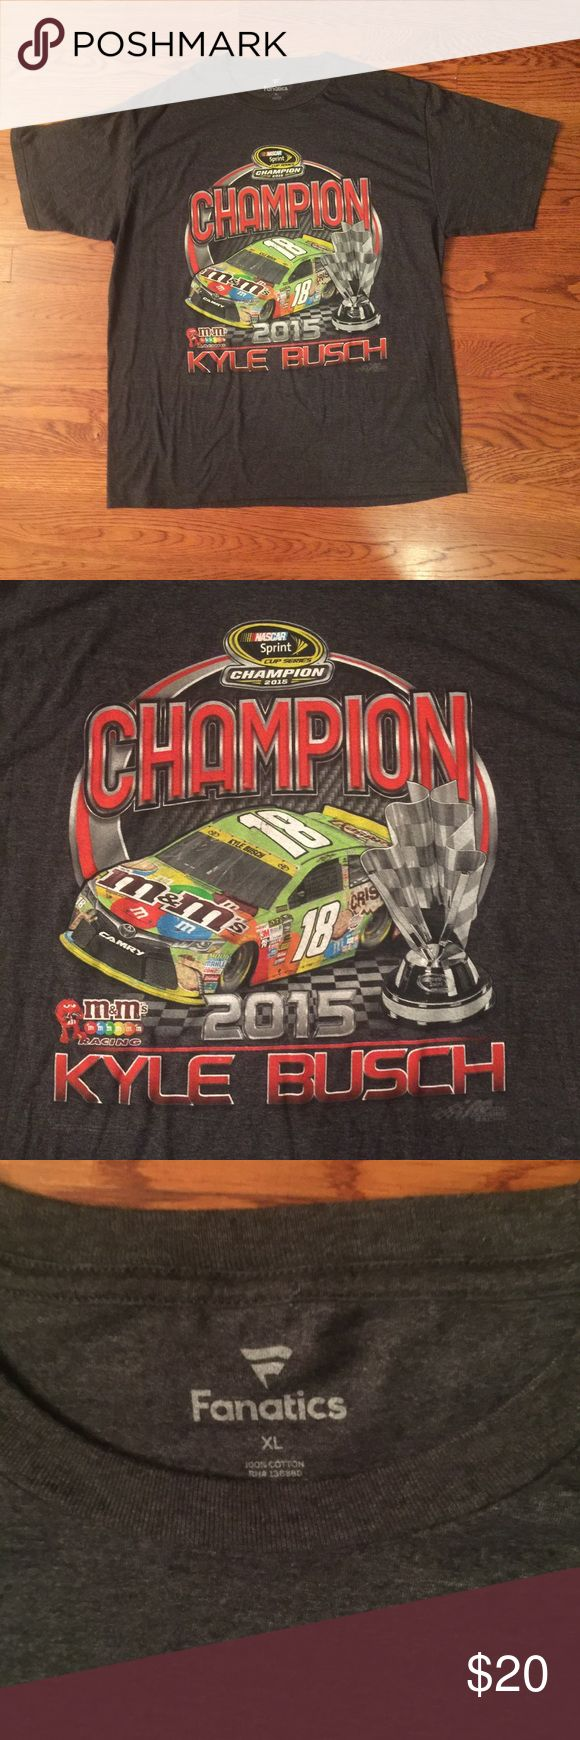 💥ON SALE 💥 Nascar T-Shirt This is a men's single sided Nascar Kyle Busch 2015 Champion T-Shirt in men's size XL. These shirts are really hot in streetwear right now because of the loud color schemes. You can dress these shirts up to compliment any outfit. Grab this shirt today‼️ Fanatics Shirts Tees - Short Sleeve